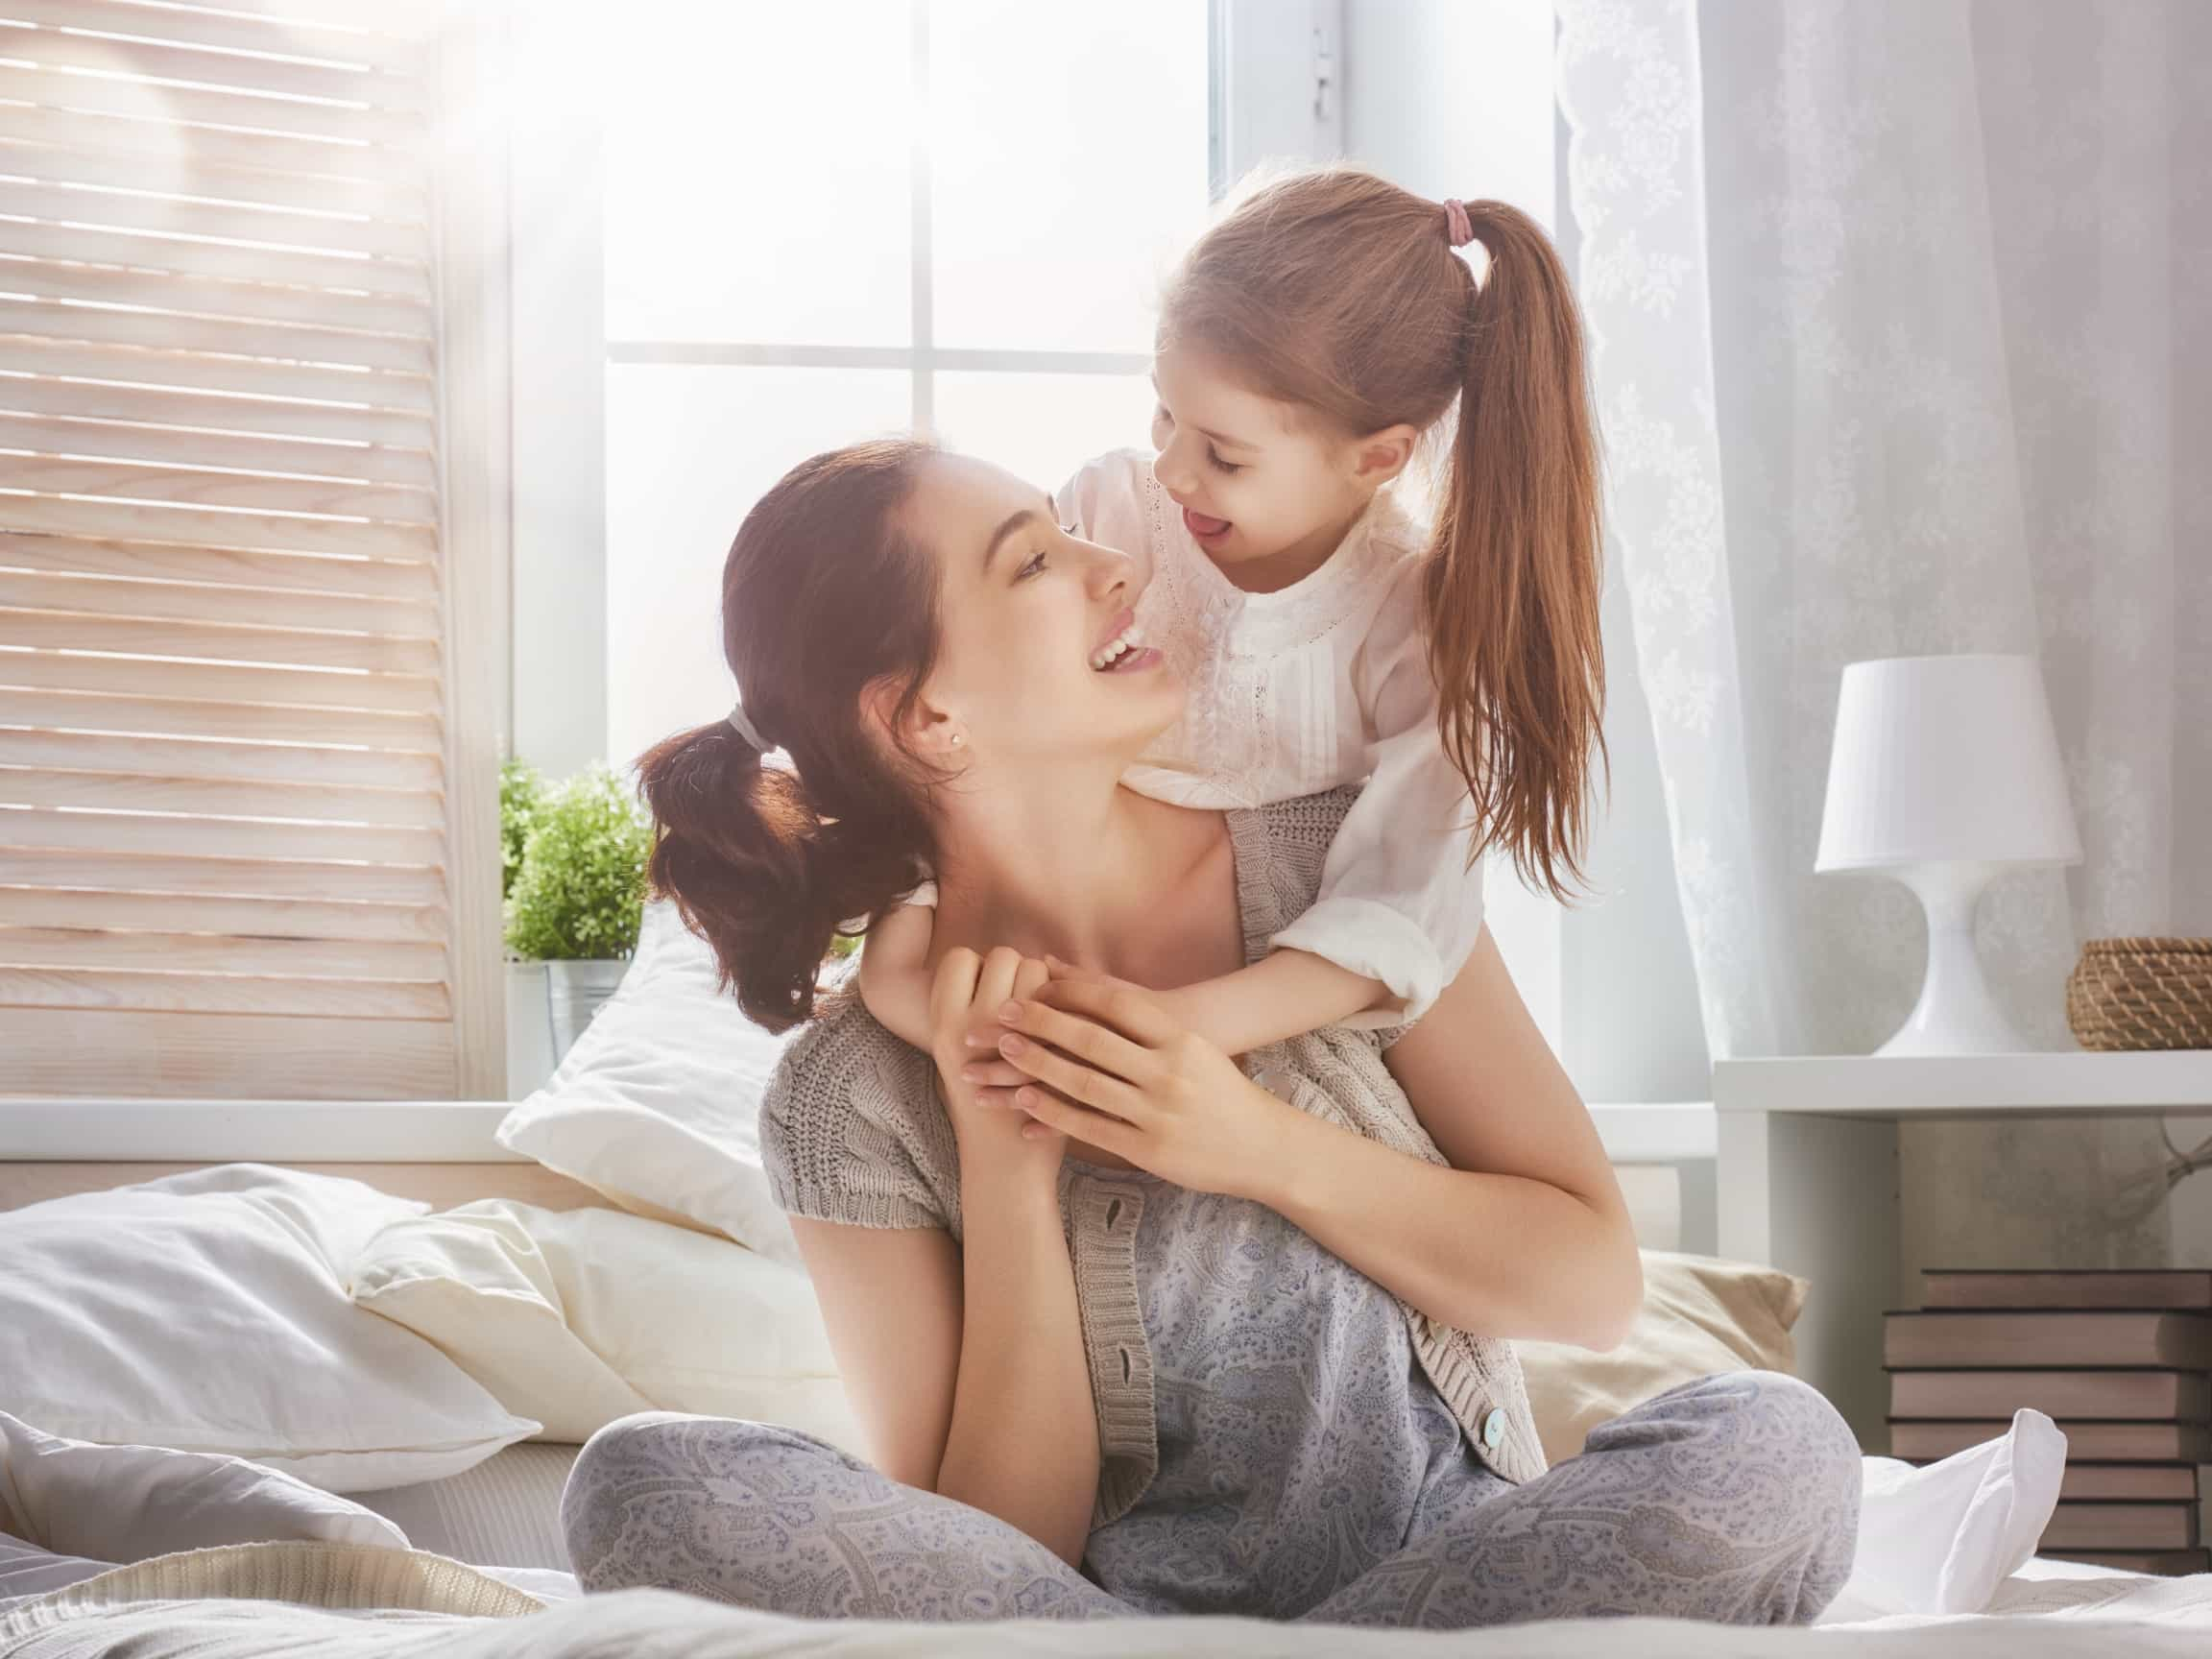 A mother and her daughter sit on a bed